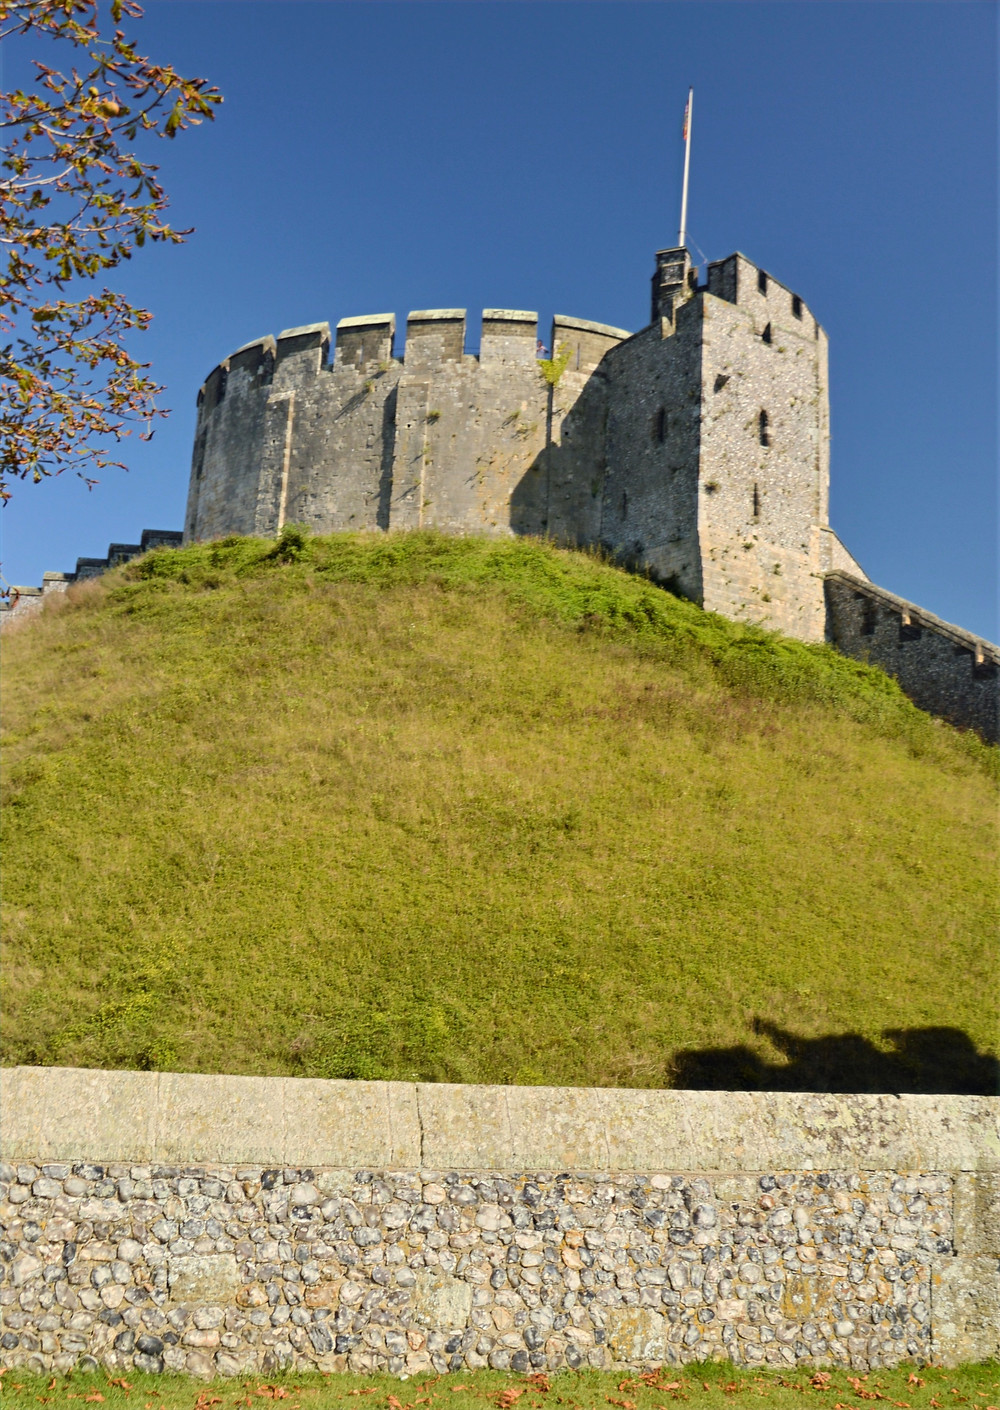 The oldest surviving parts of Arundel Castle is the Keep dating originally from 1068